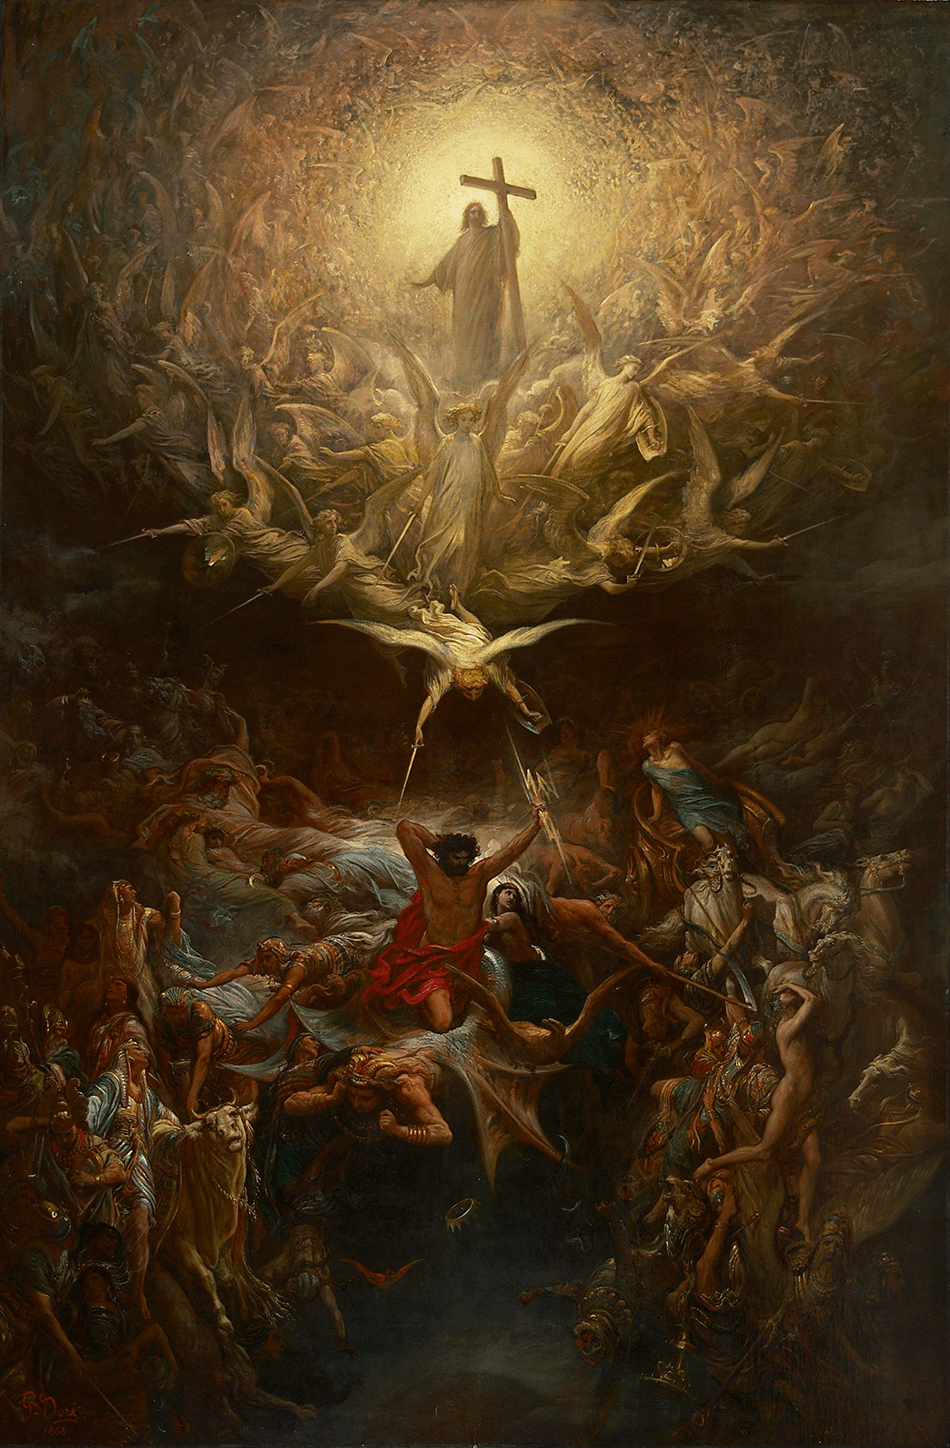 Gustave Doré (French 1832-1883), The Triumph of Christianity over Paganism 1868, oil on canvas. The Joey and Toby Tanenbaum Collection, 2002.